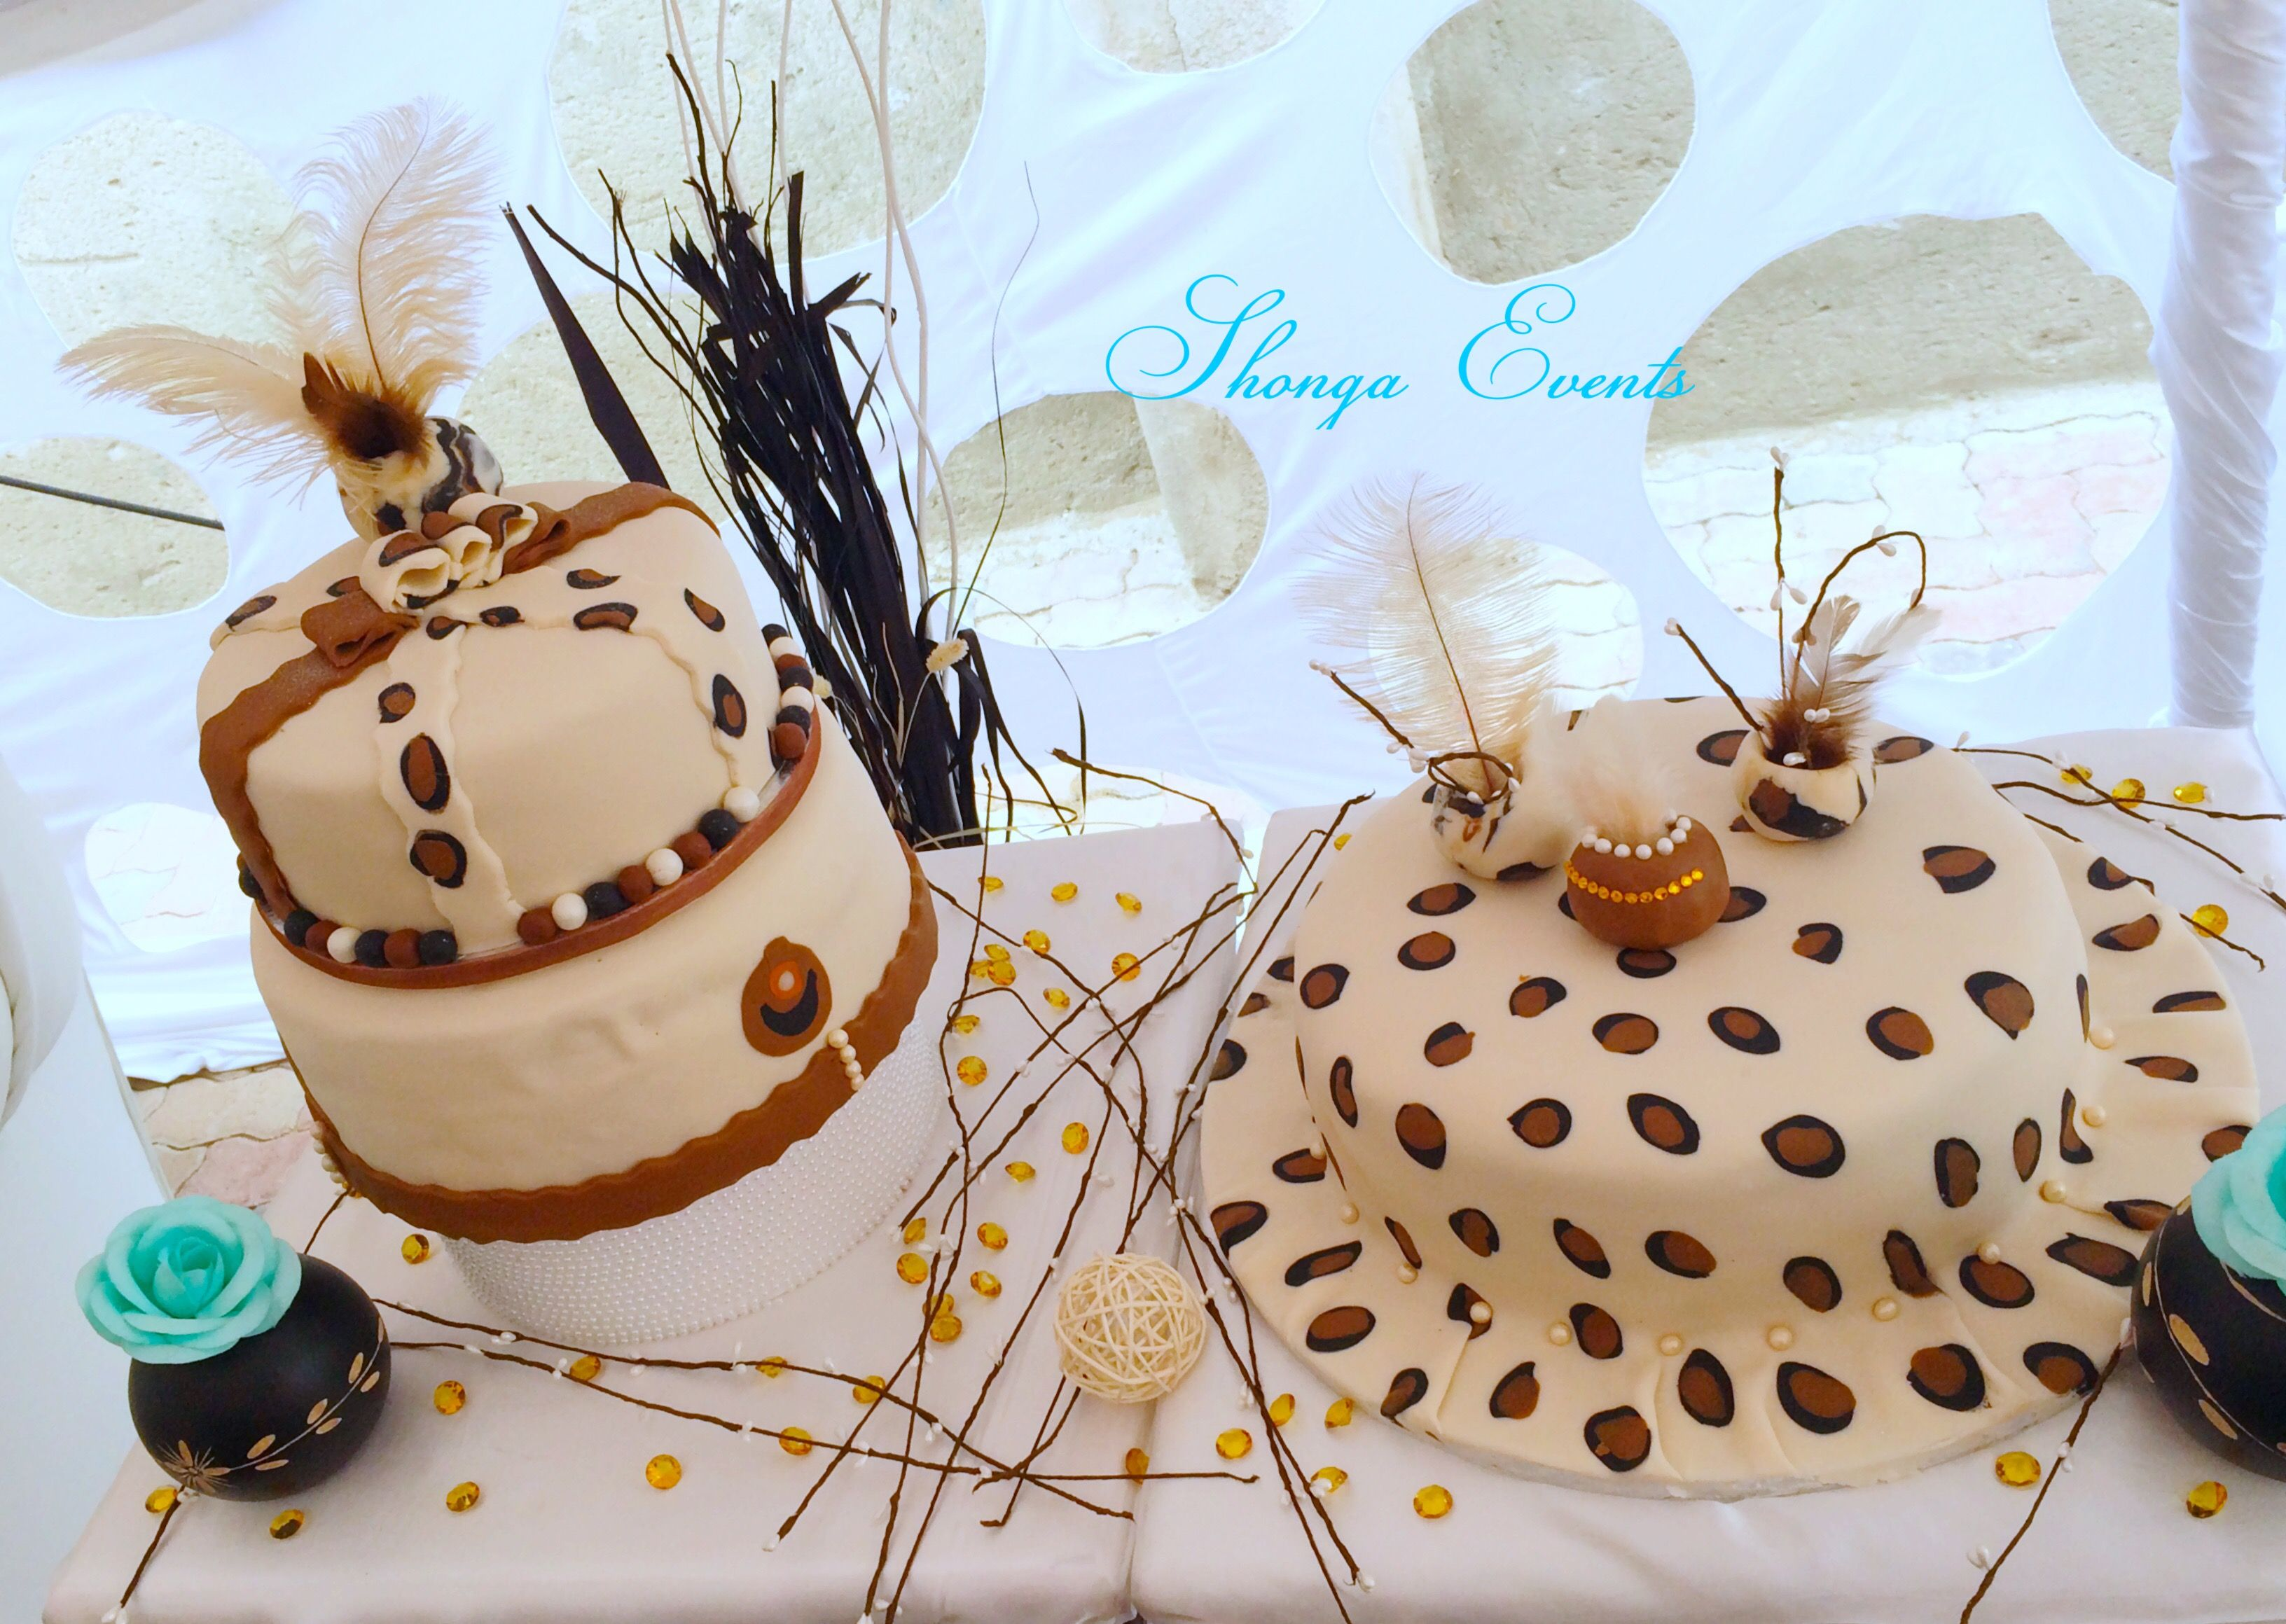 leopard skin cake for a traditional wedding by shonga